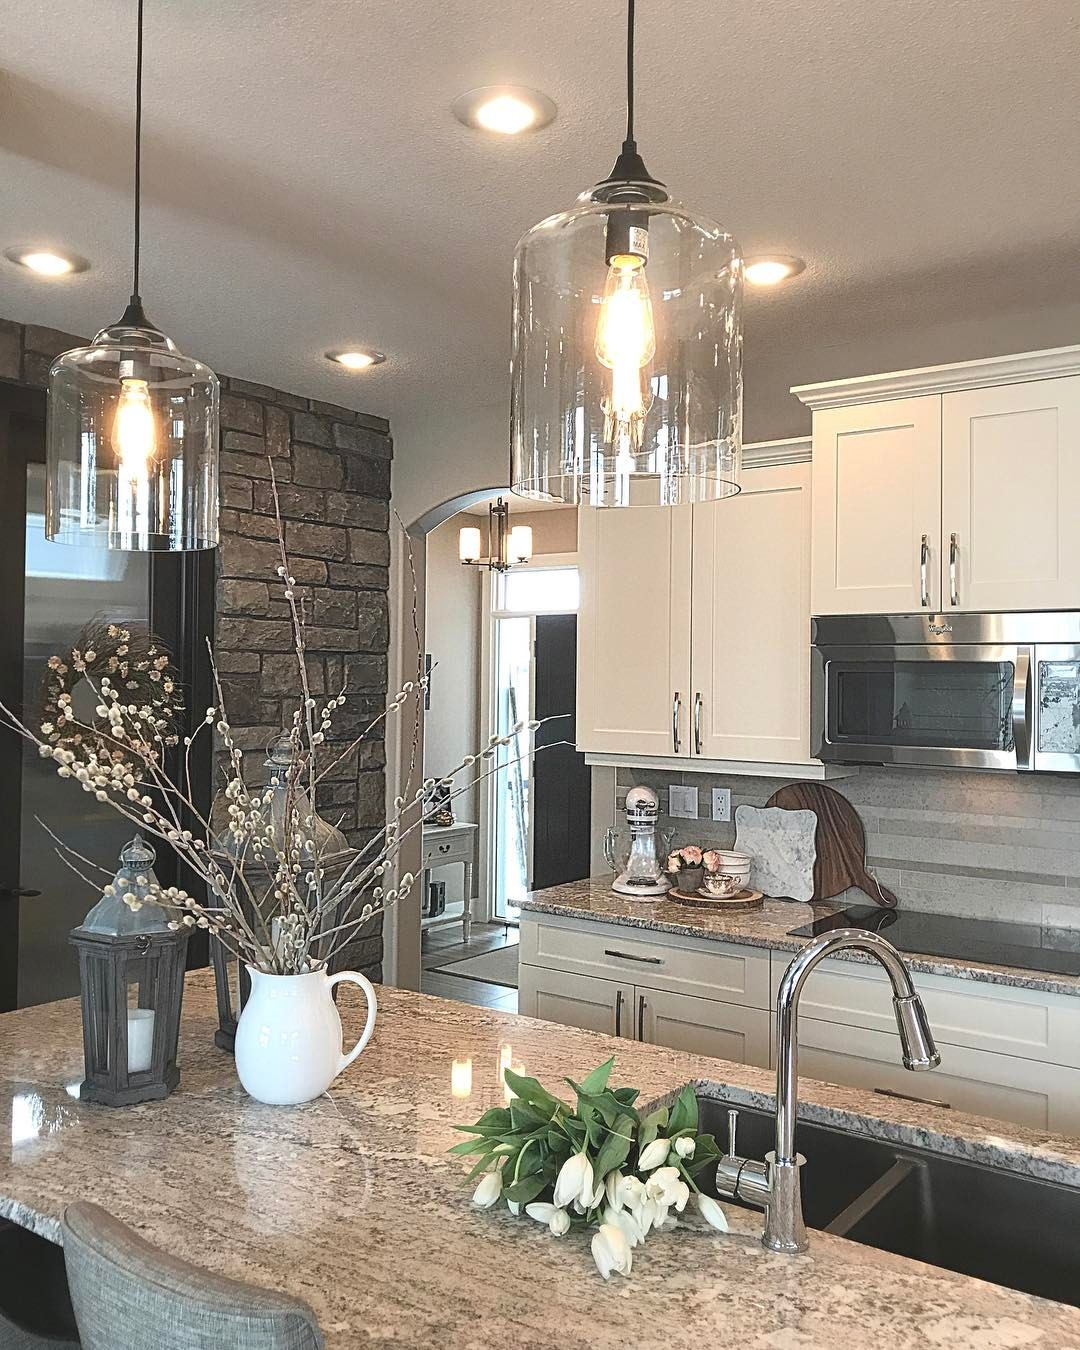 Modern Island Lighting Pin By Erica Bunker On Decorating My House In 2019 Home